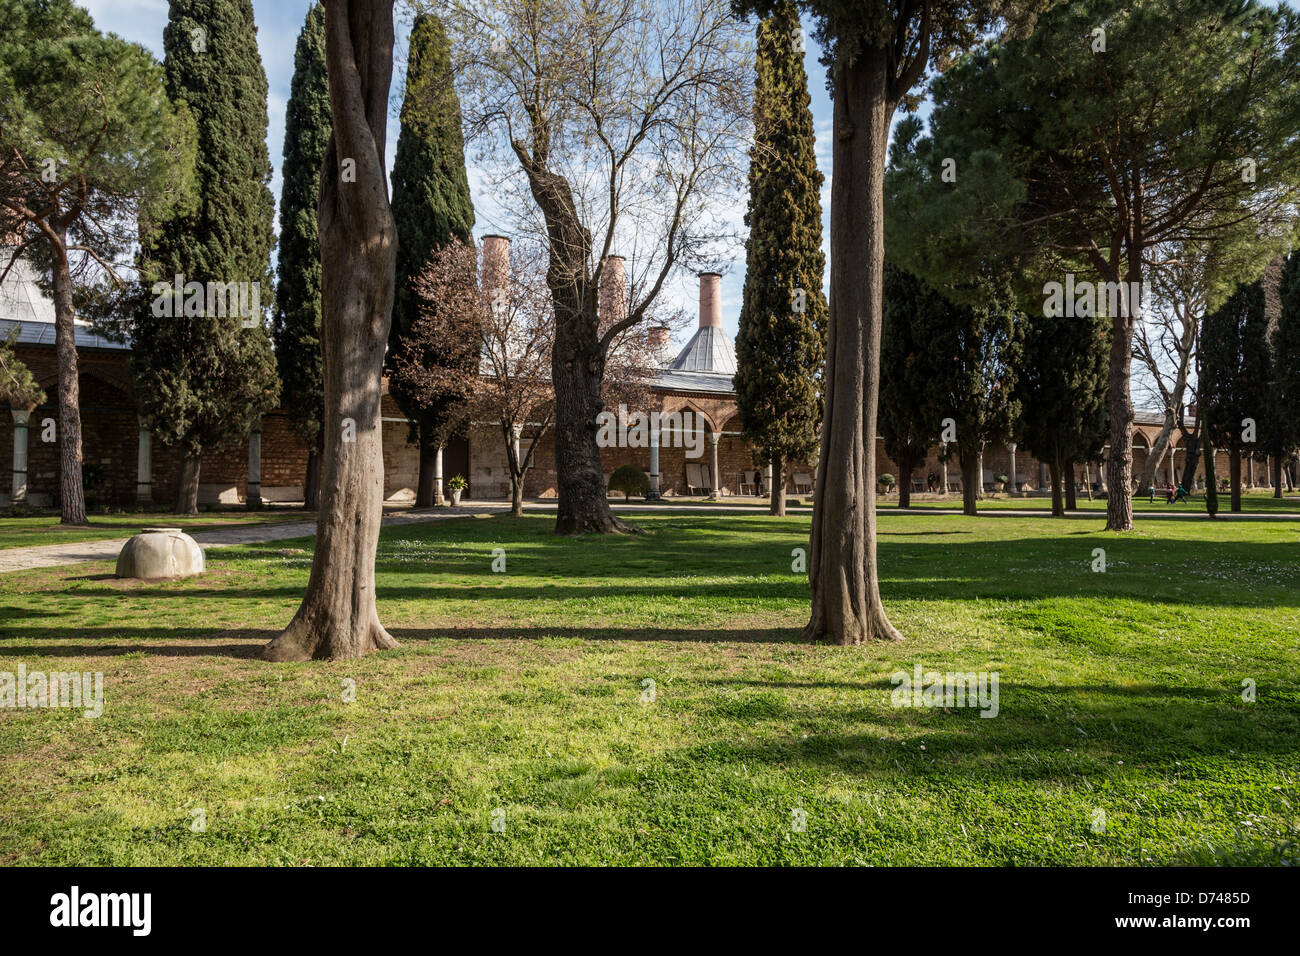 Second Courtyard, with the kitchens to the left in Topkapi palace, Istanbul, Turkey. - Stock Image